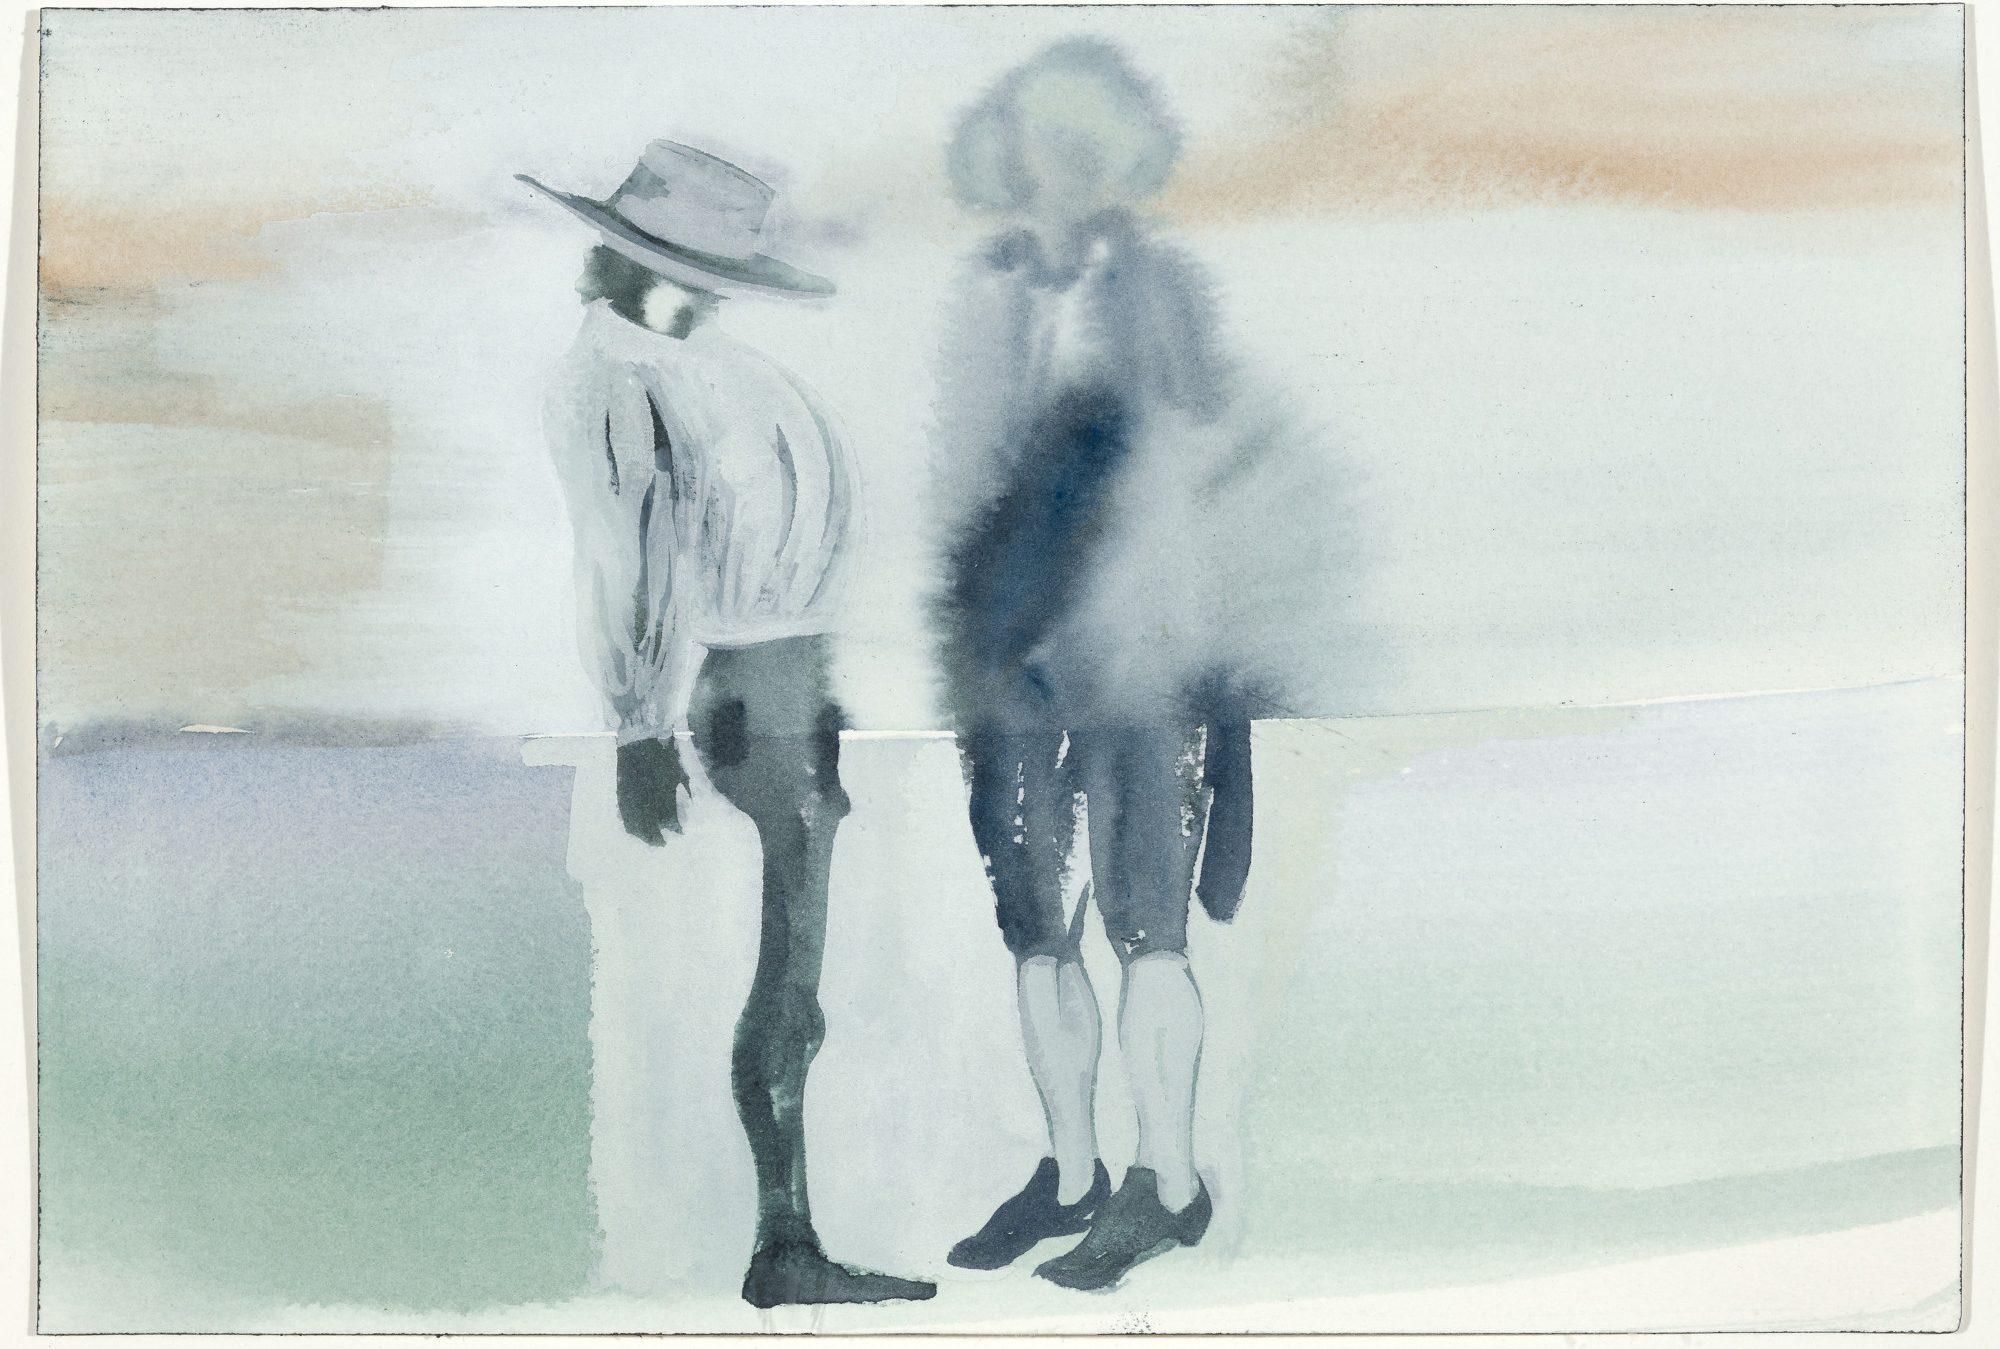 Kara Walker (American, b. 1969), Mase n' Dixon from the series Negress Notes (Slavery Reparations Act), 2003. Watercolor, 7 x 10 1/4 in. Museum purchase, Kathryn Hurd Fund, M.2003.1.A